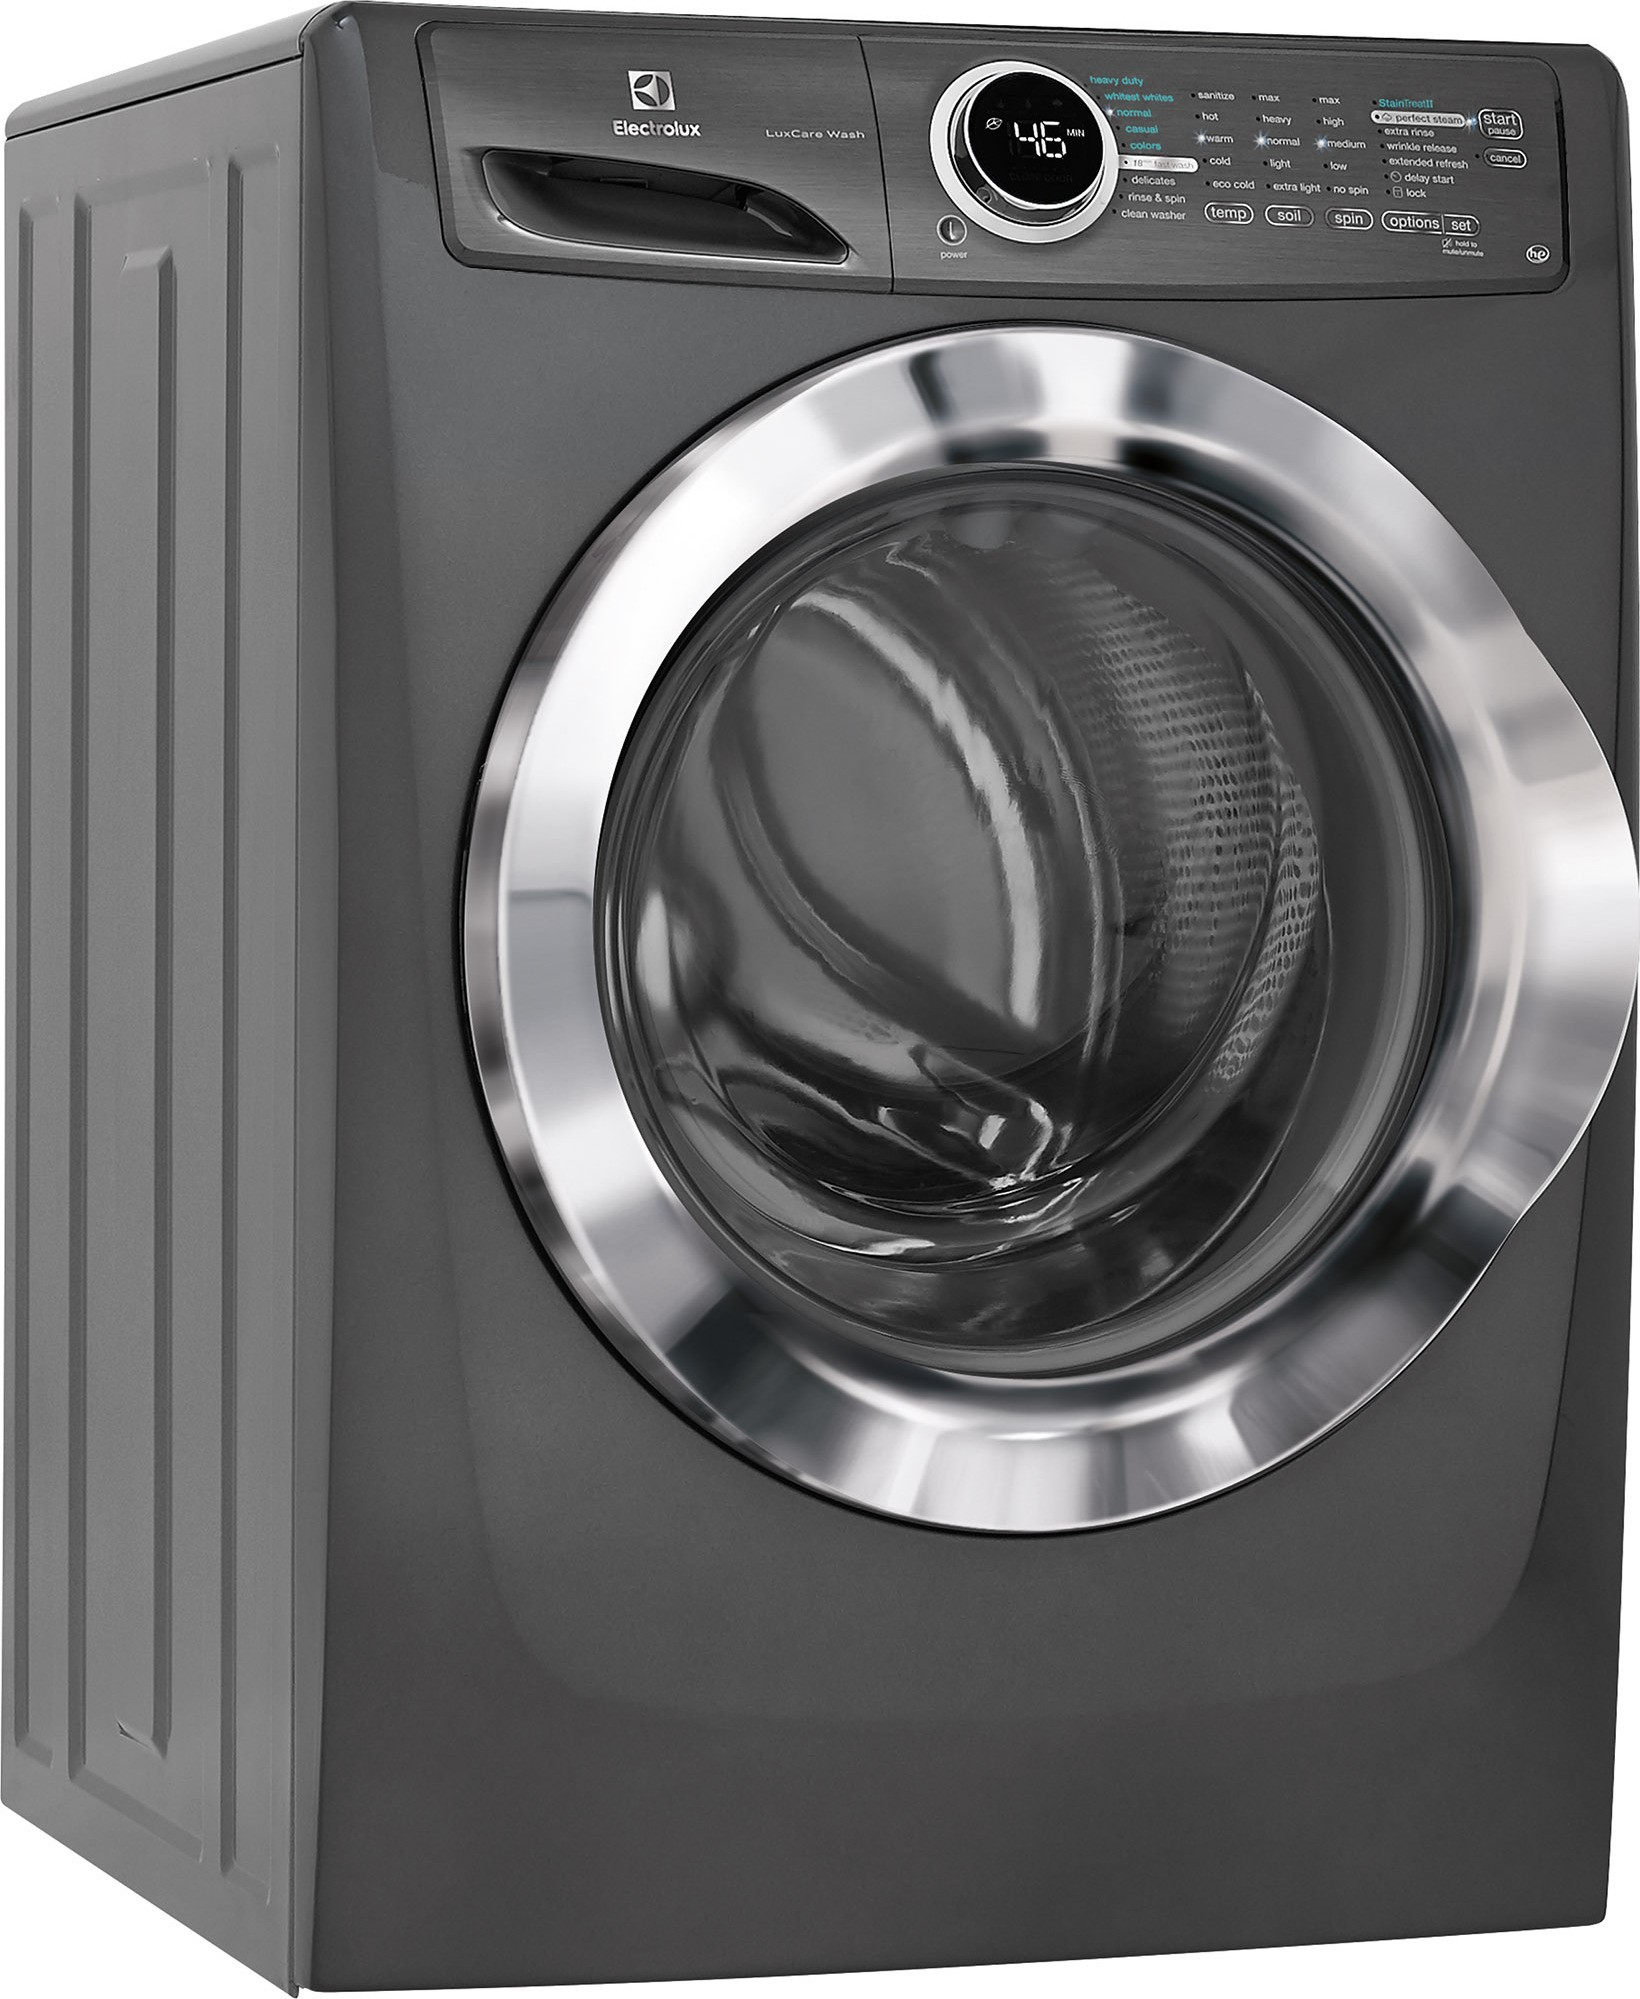 handle spin integrated dryers pedestal front chrome your raises laundry and loading electrolux w june gray prod metallic washer the